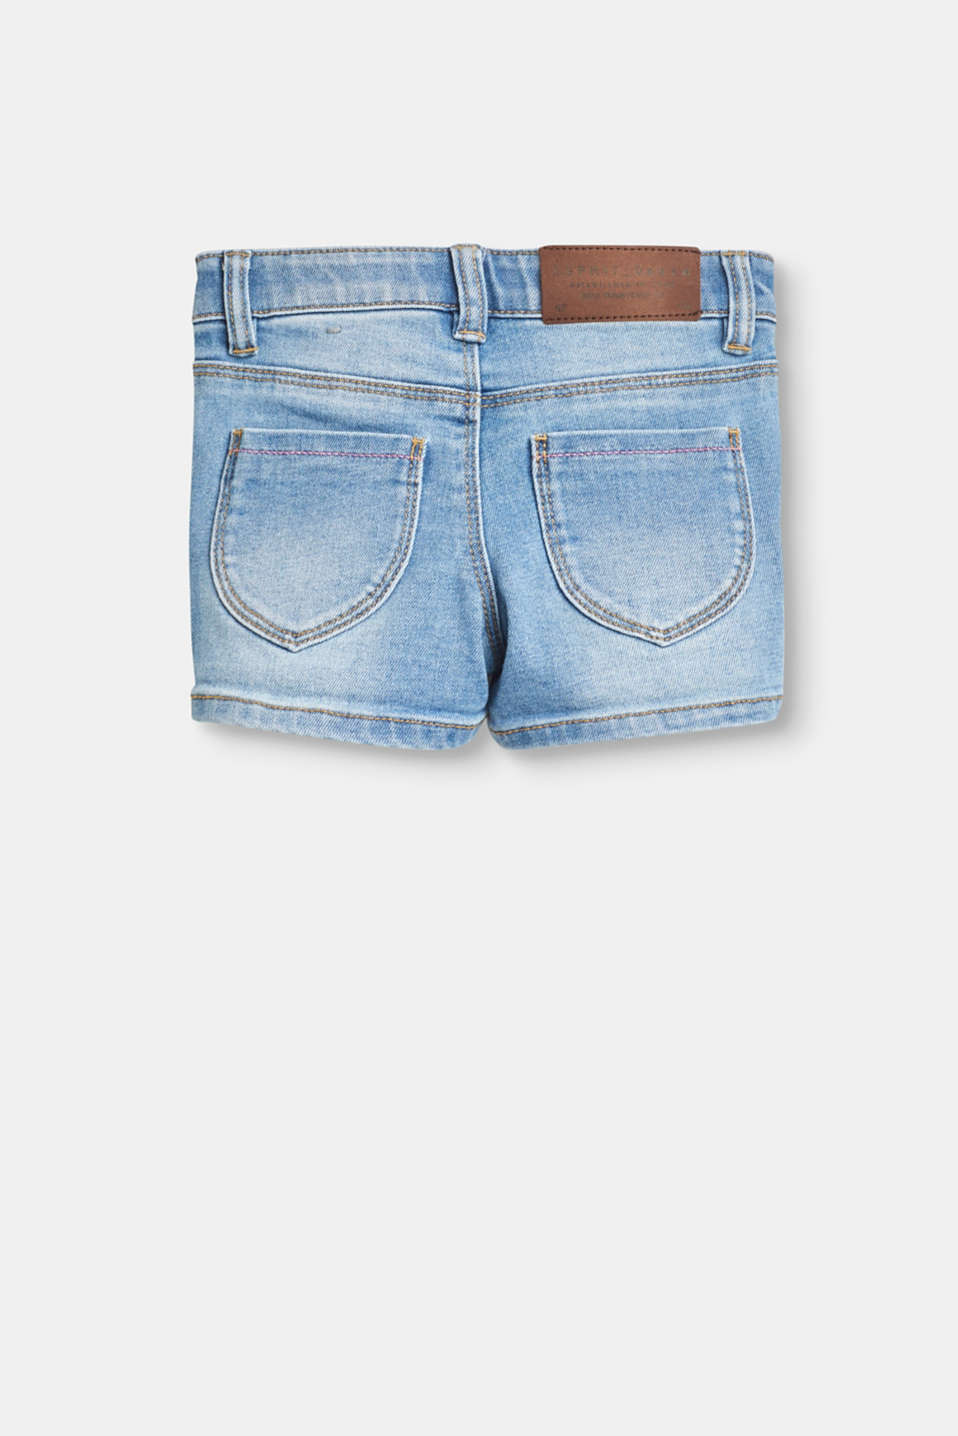 Cotton denim shorts with stretch for comfort